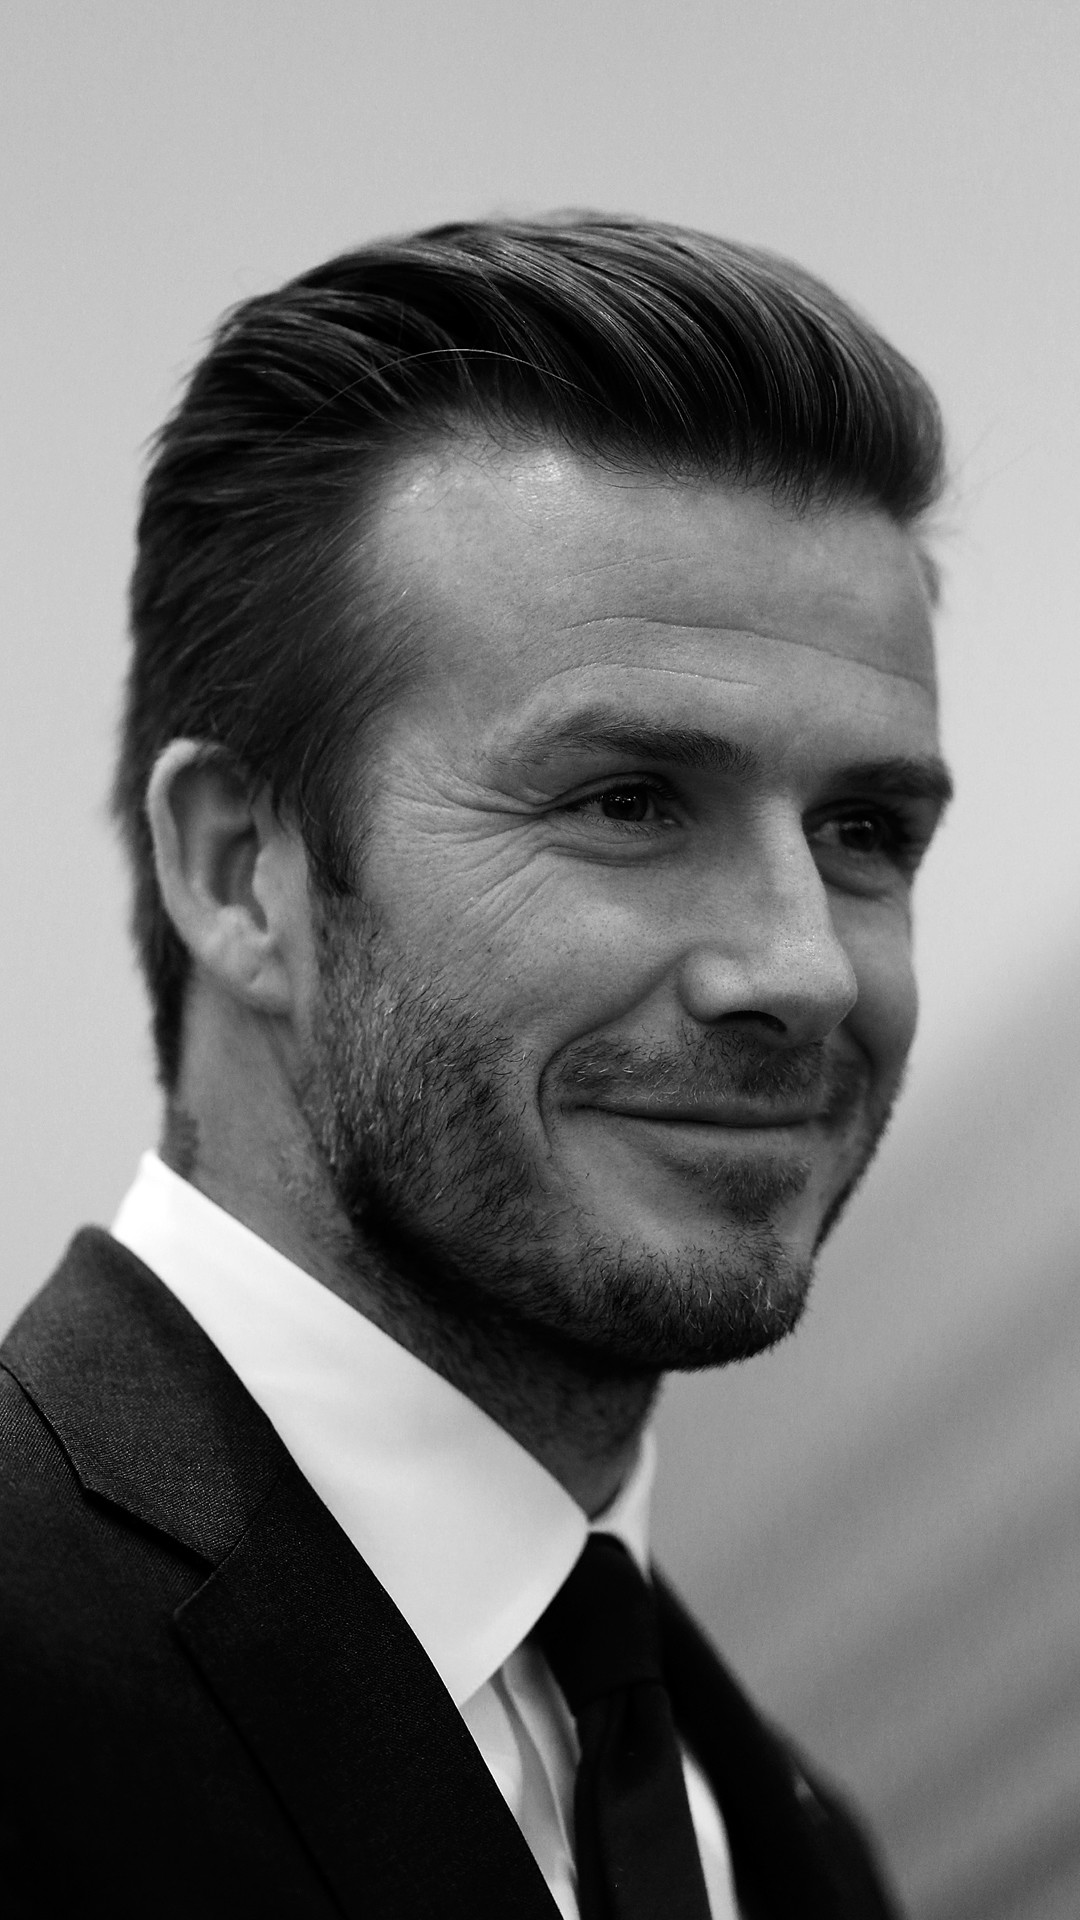 Stylish Girl Wallpaper For Iphone David Beckham Wallpapers 53 Images